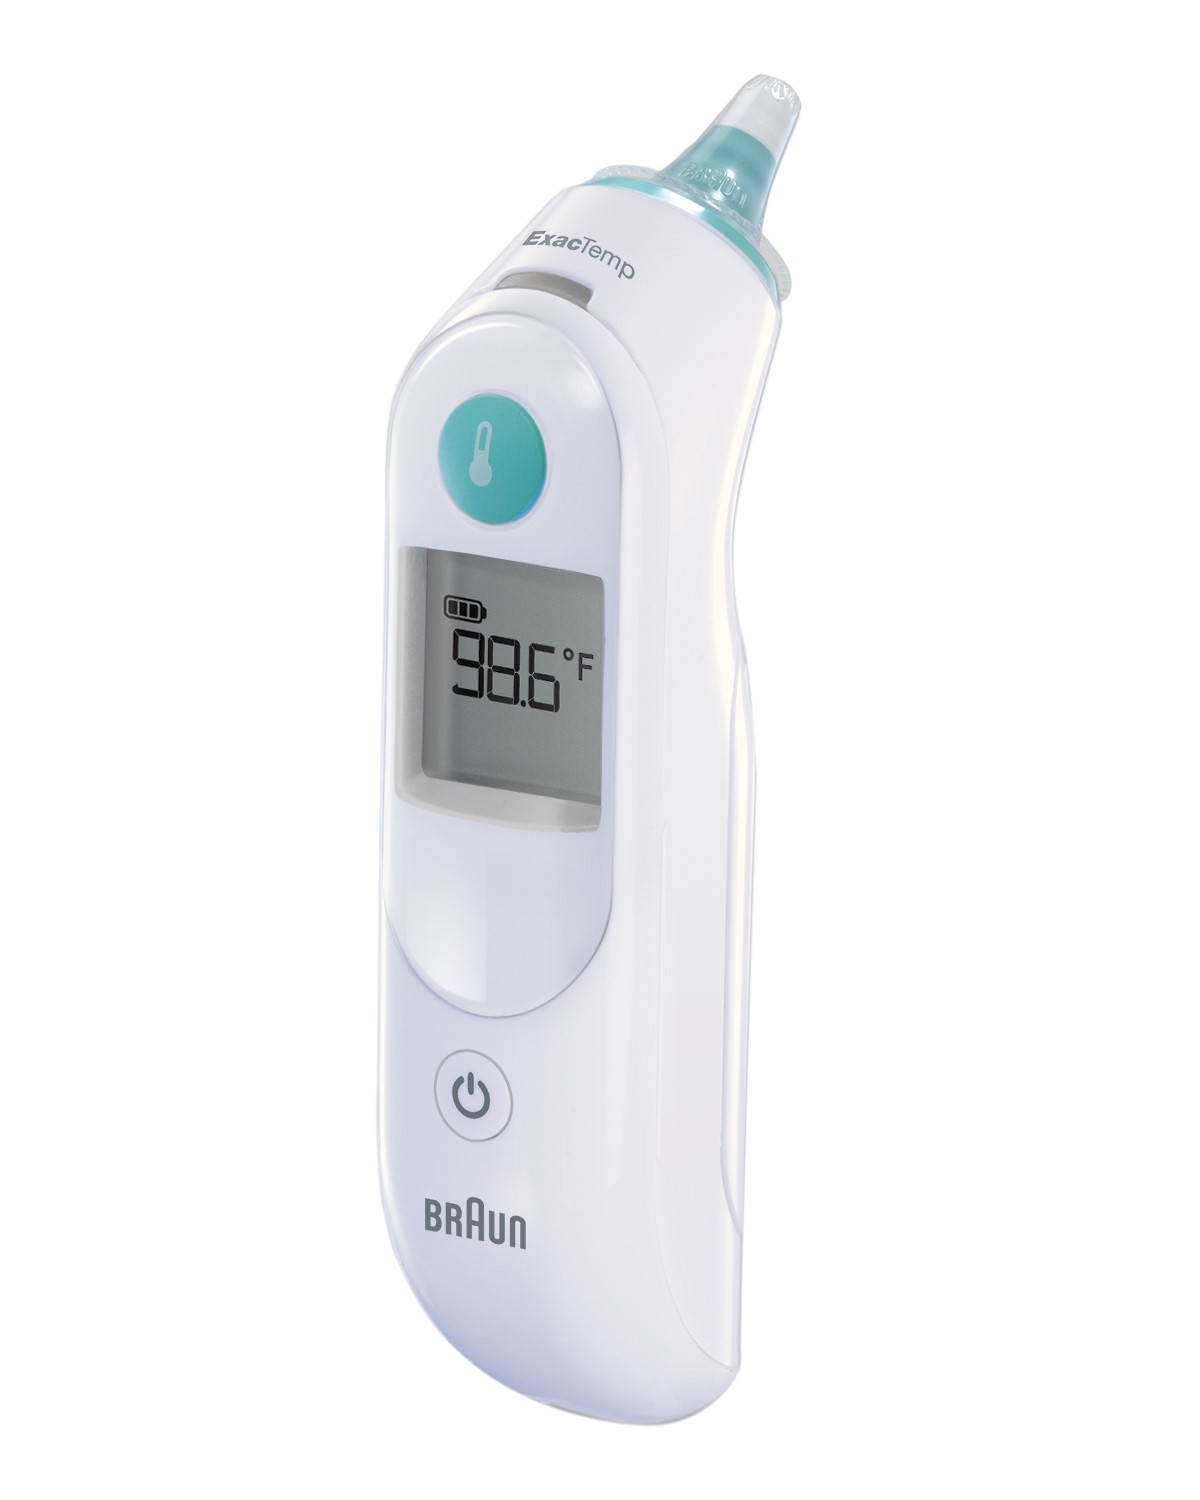 Braun Digital Ear Thermometer only $32.99 with coupon! (save $17)